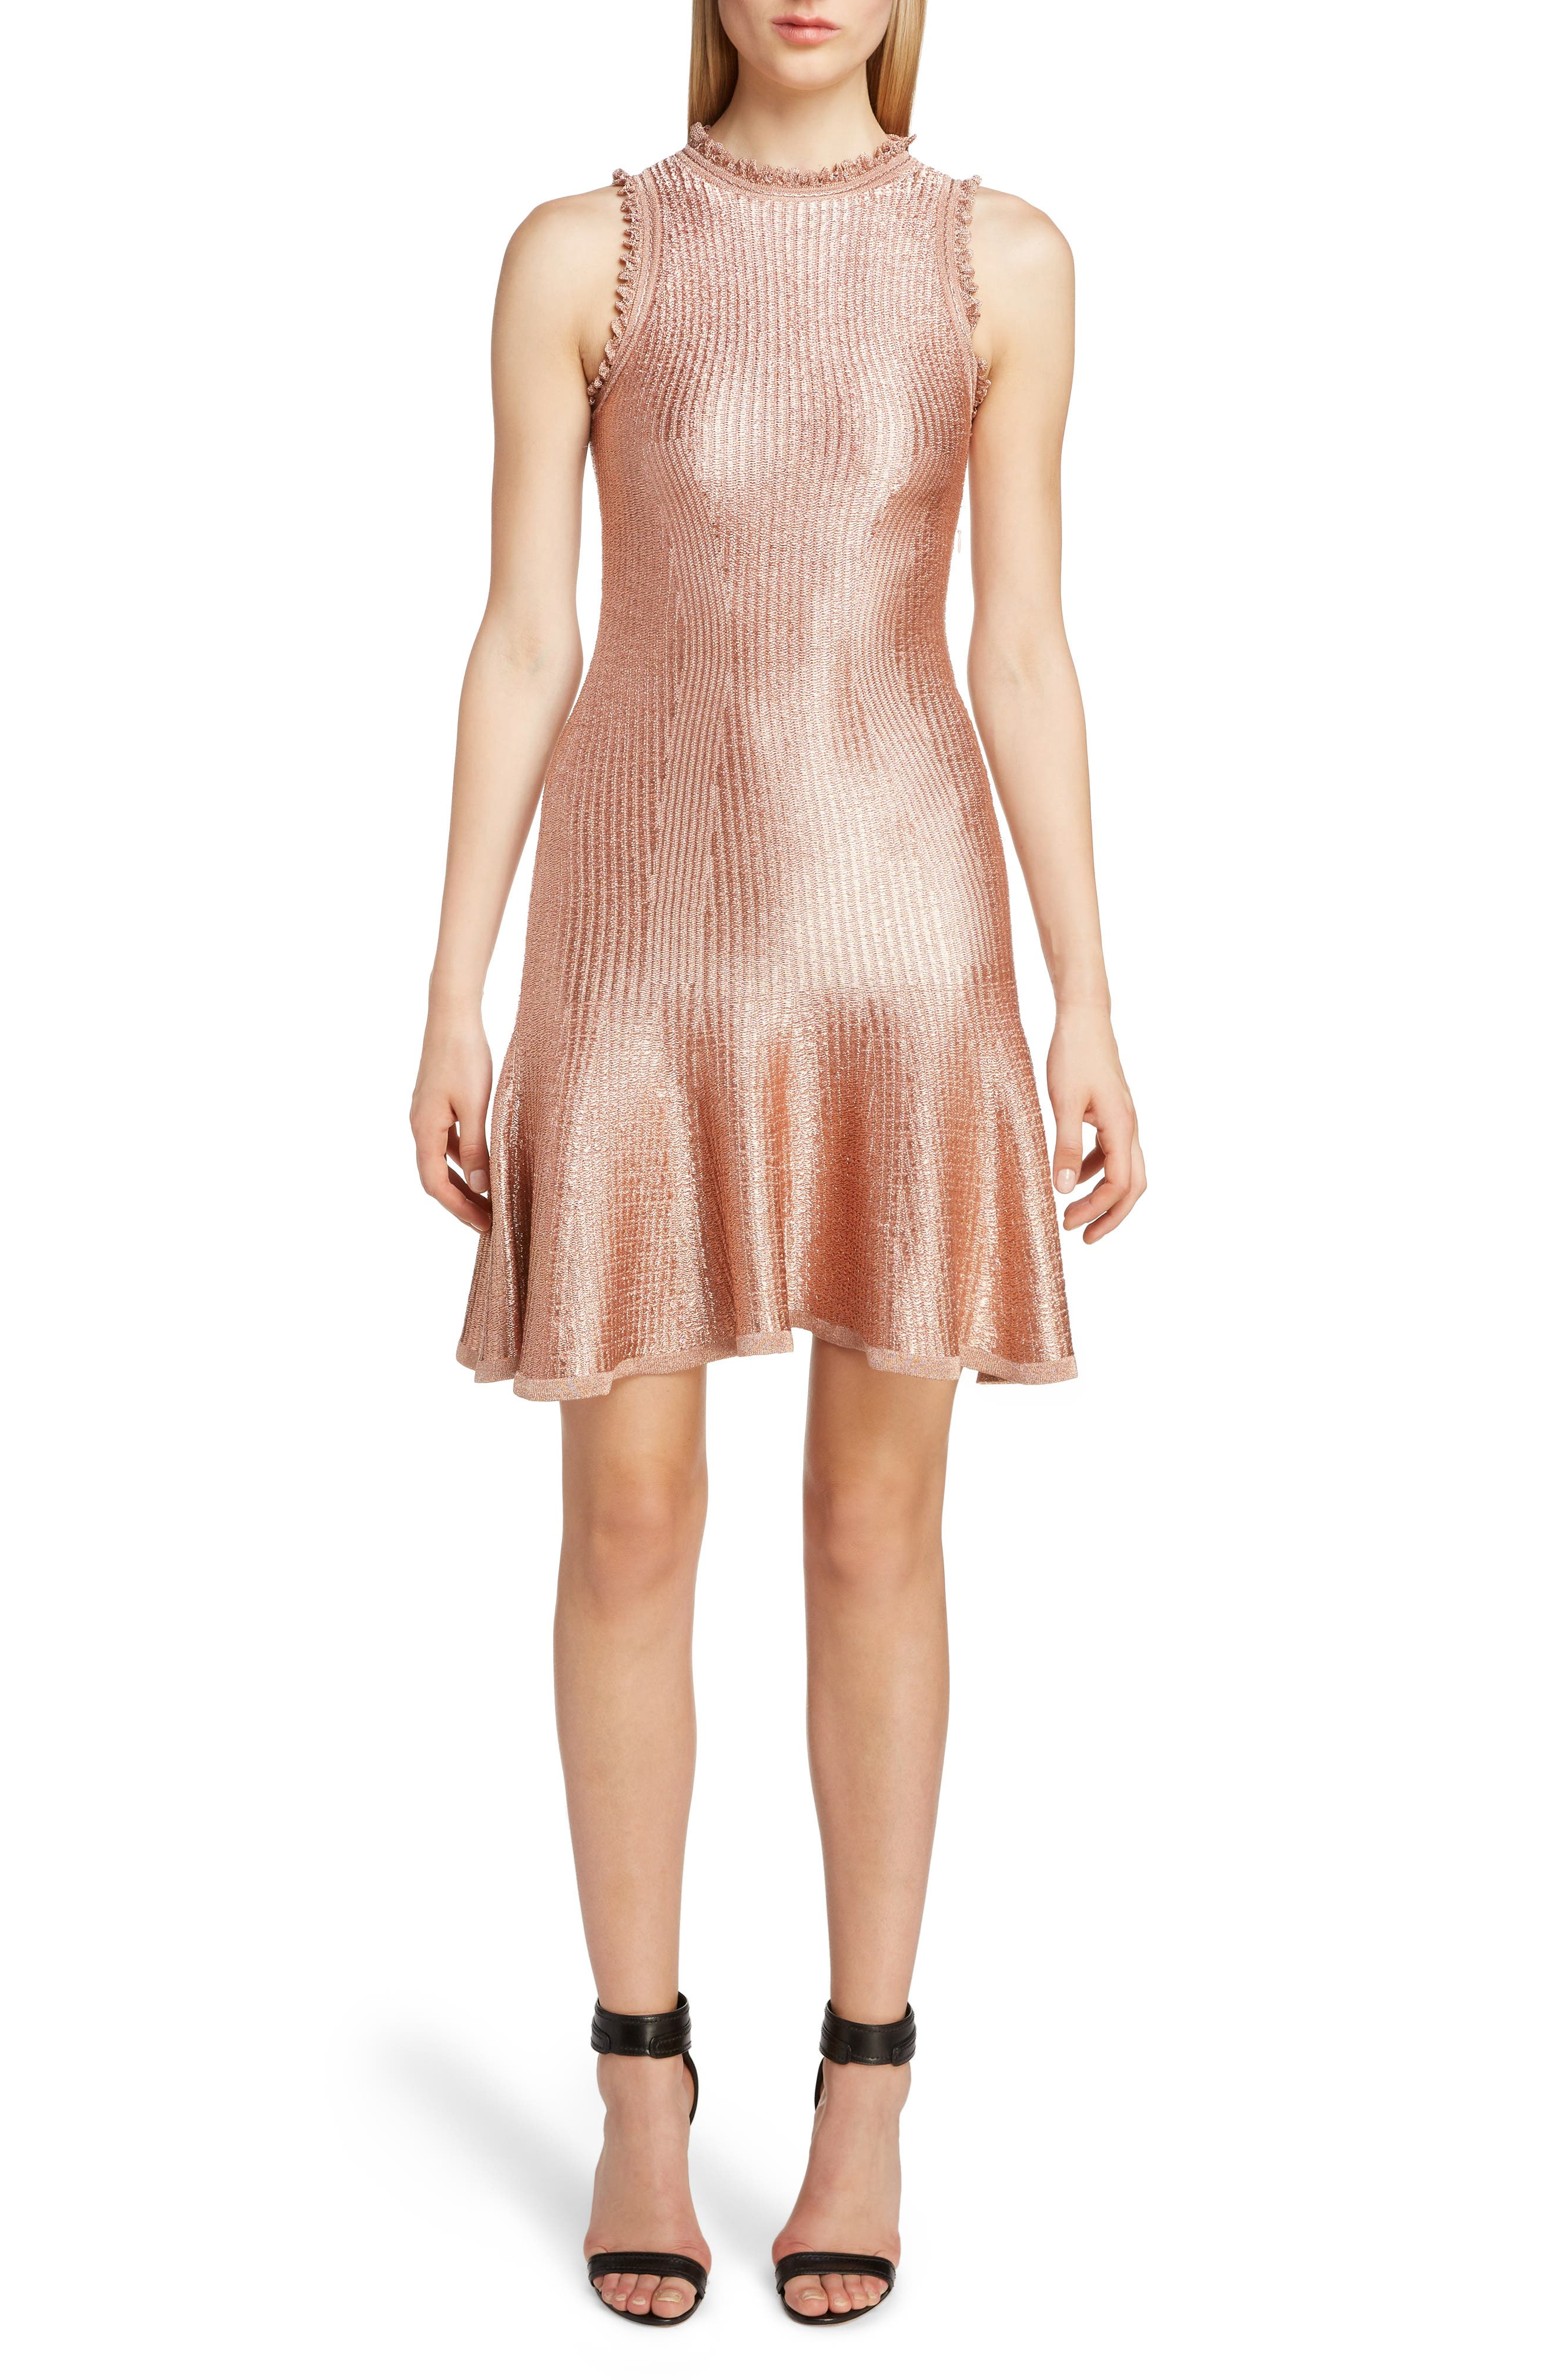 Alexander Mcqueen Ruffle Trim Metallic Ribbed Dress, Pink